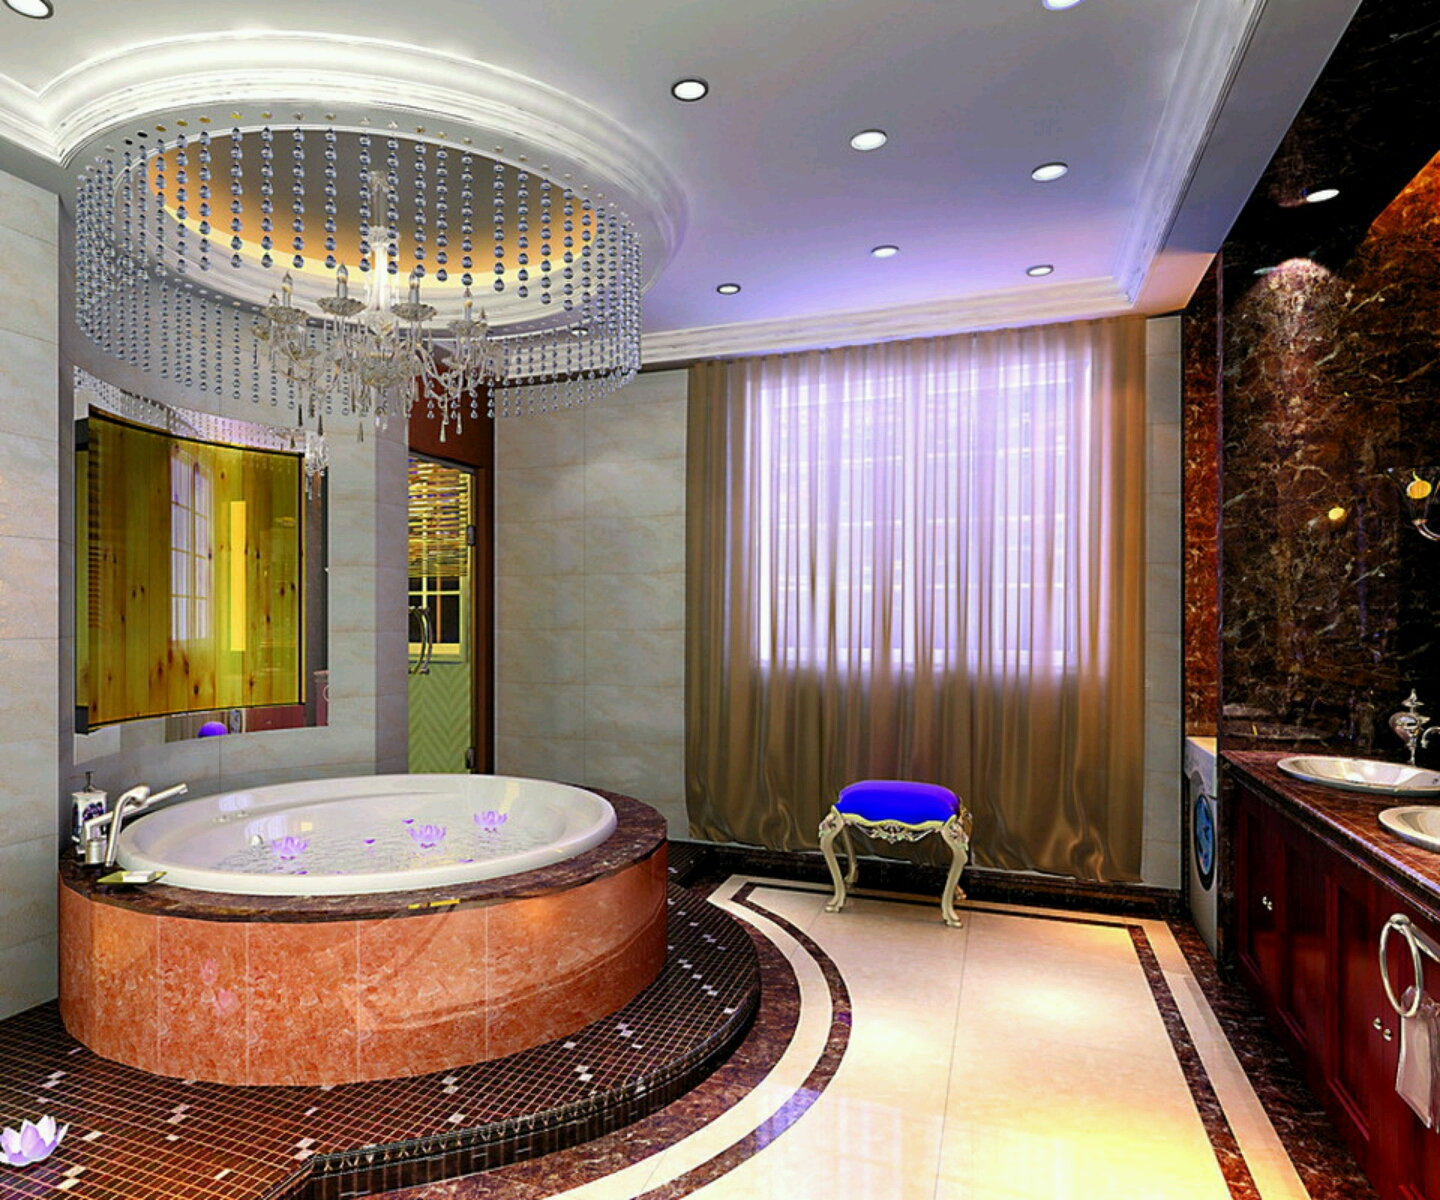 Luxury bathrooms designs ideas new home designs for Luxury bathroom designs